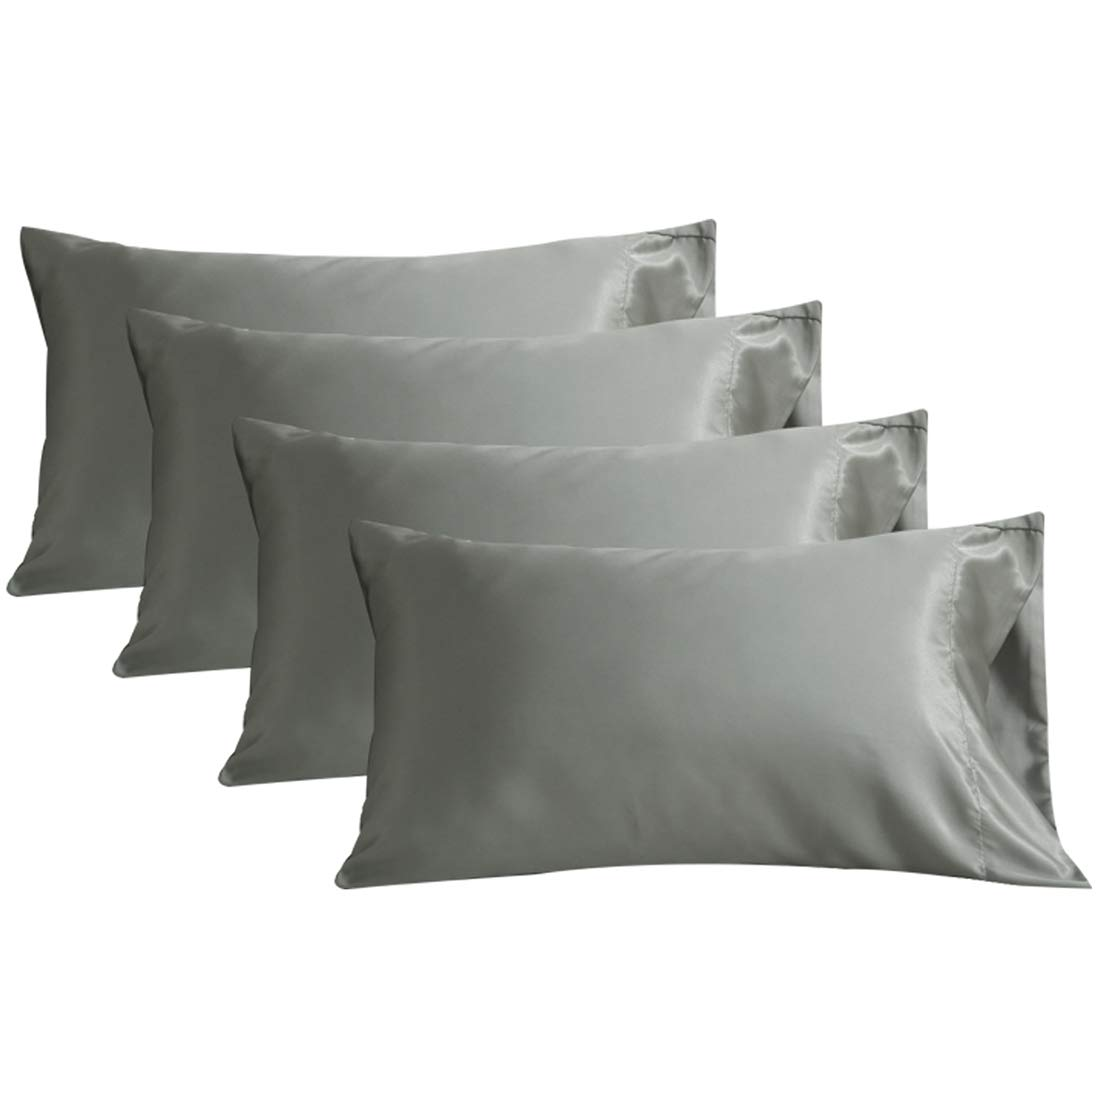 Homiest 2Pc Satin Pillowcase for Hair Standard Size//Queen Size 20x30 Taupe with Envelope Closure Shenzhenshibulaosongmaoyiyouxiangongsi